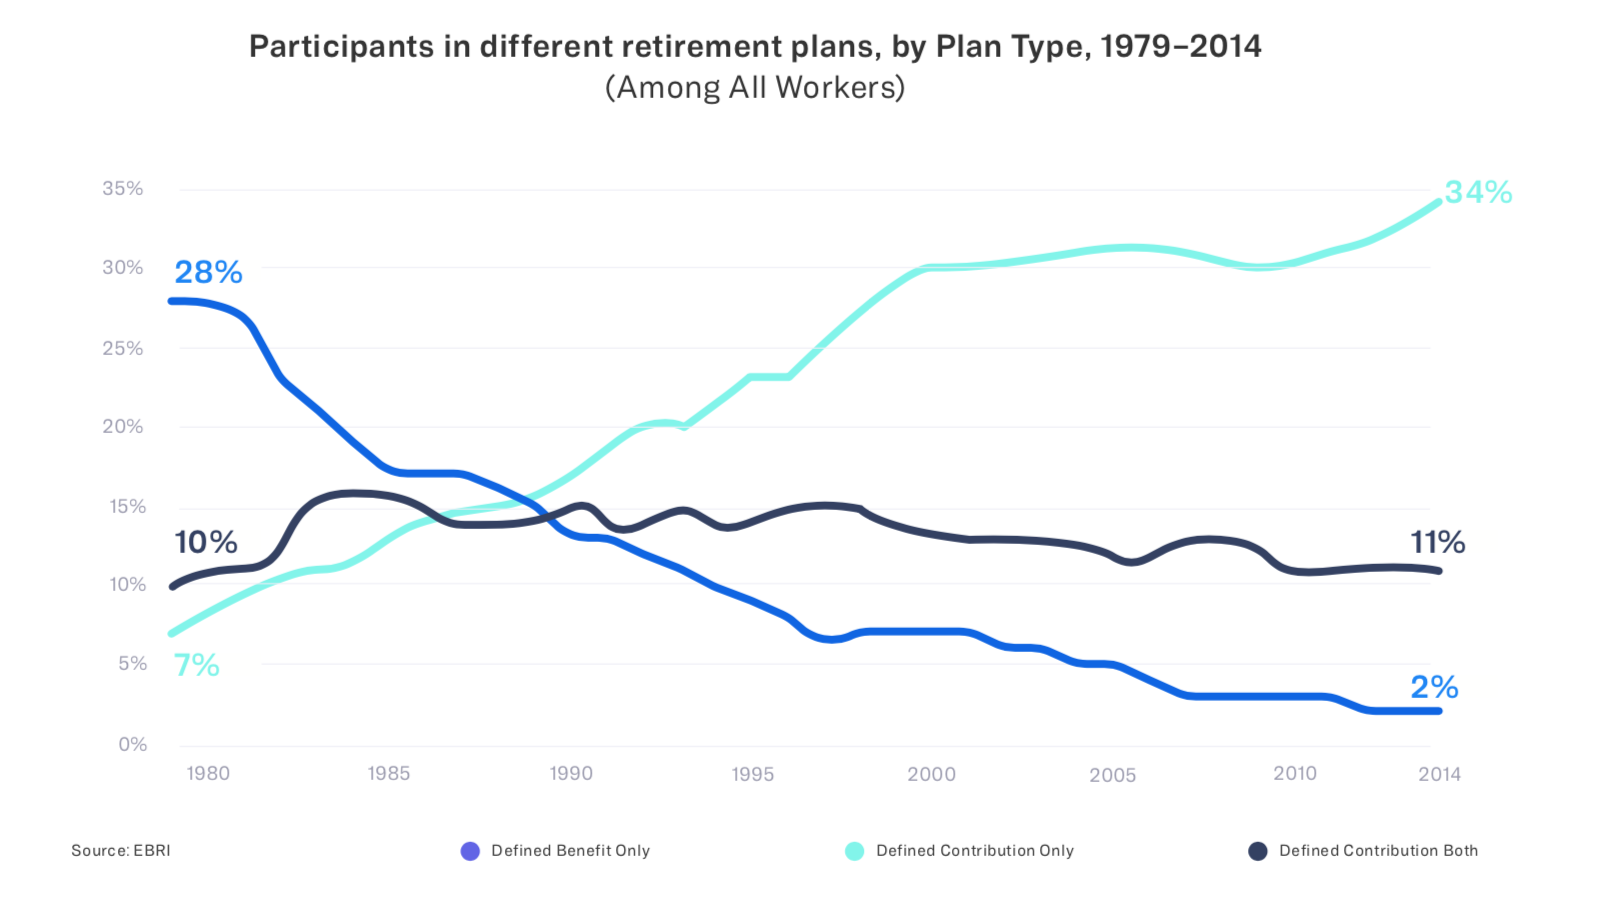 Most popular types of retirement plans, historically